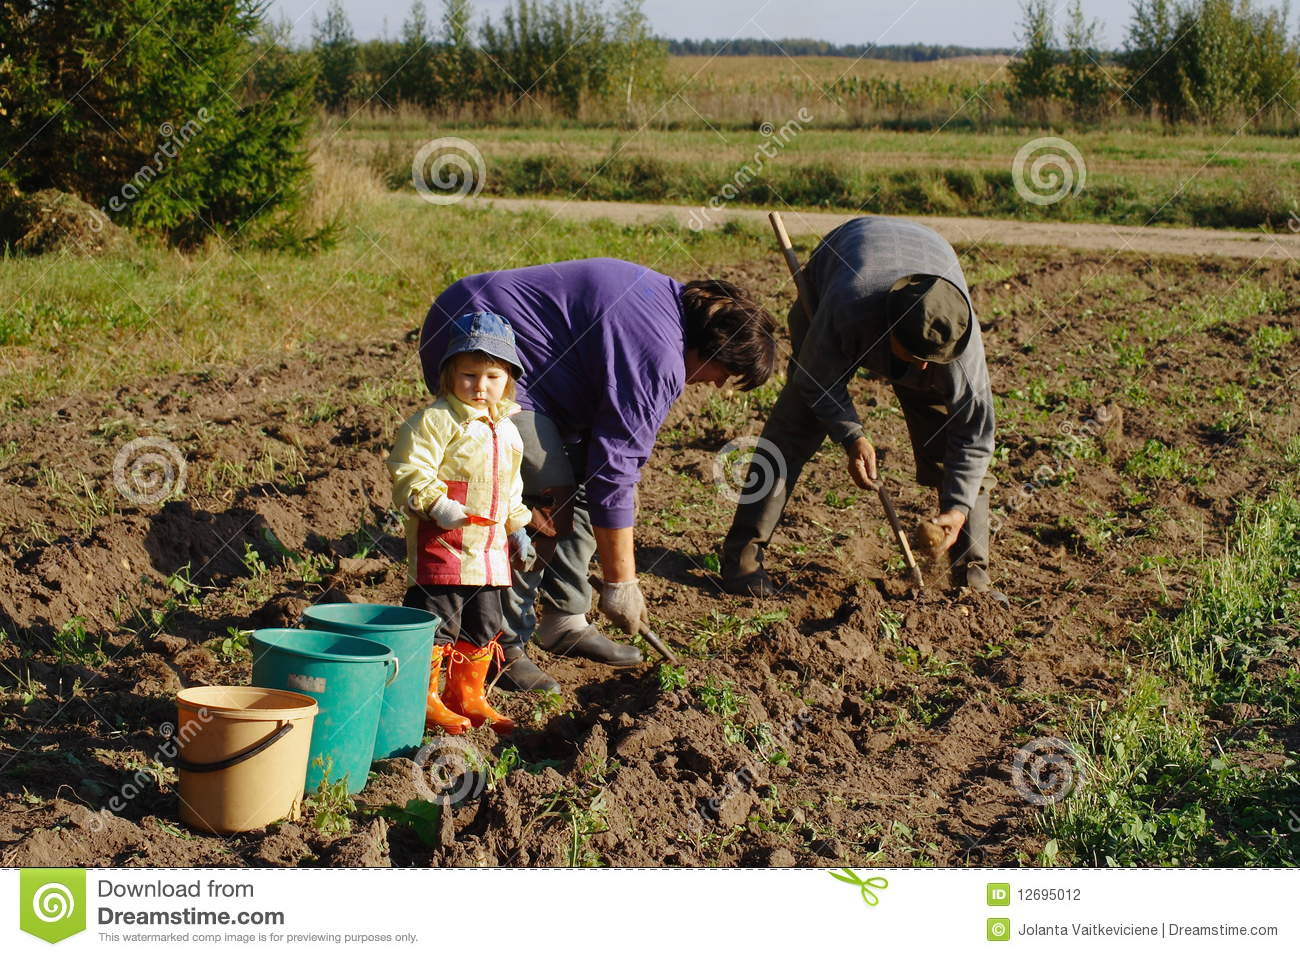 Potato digging in country side